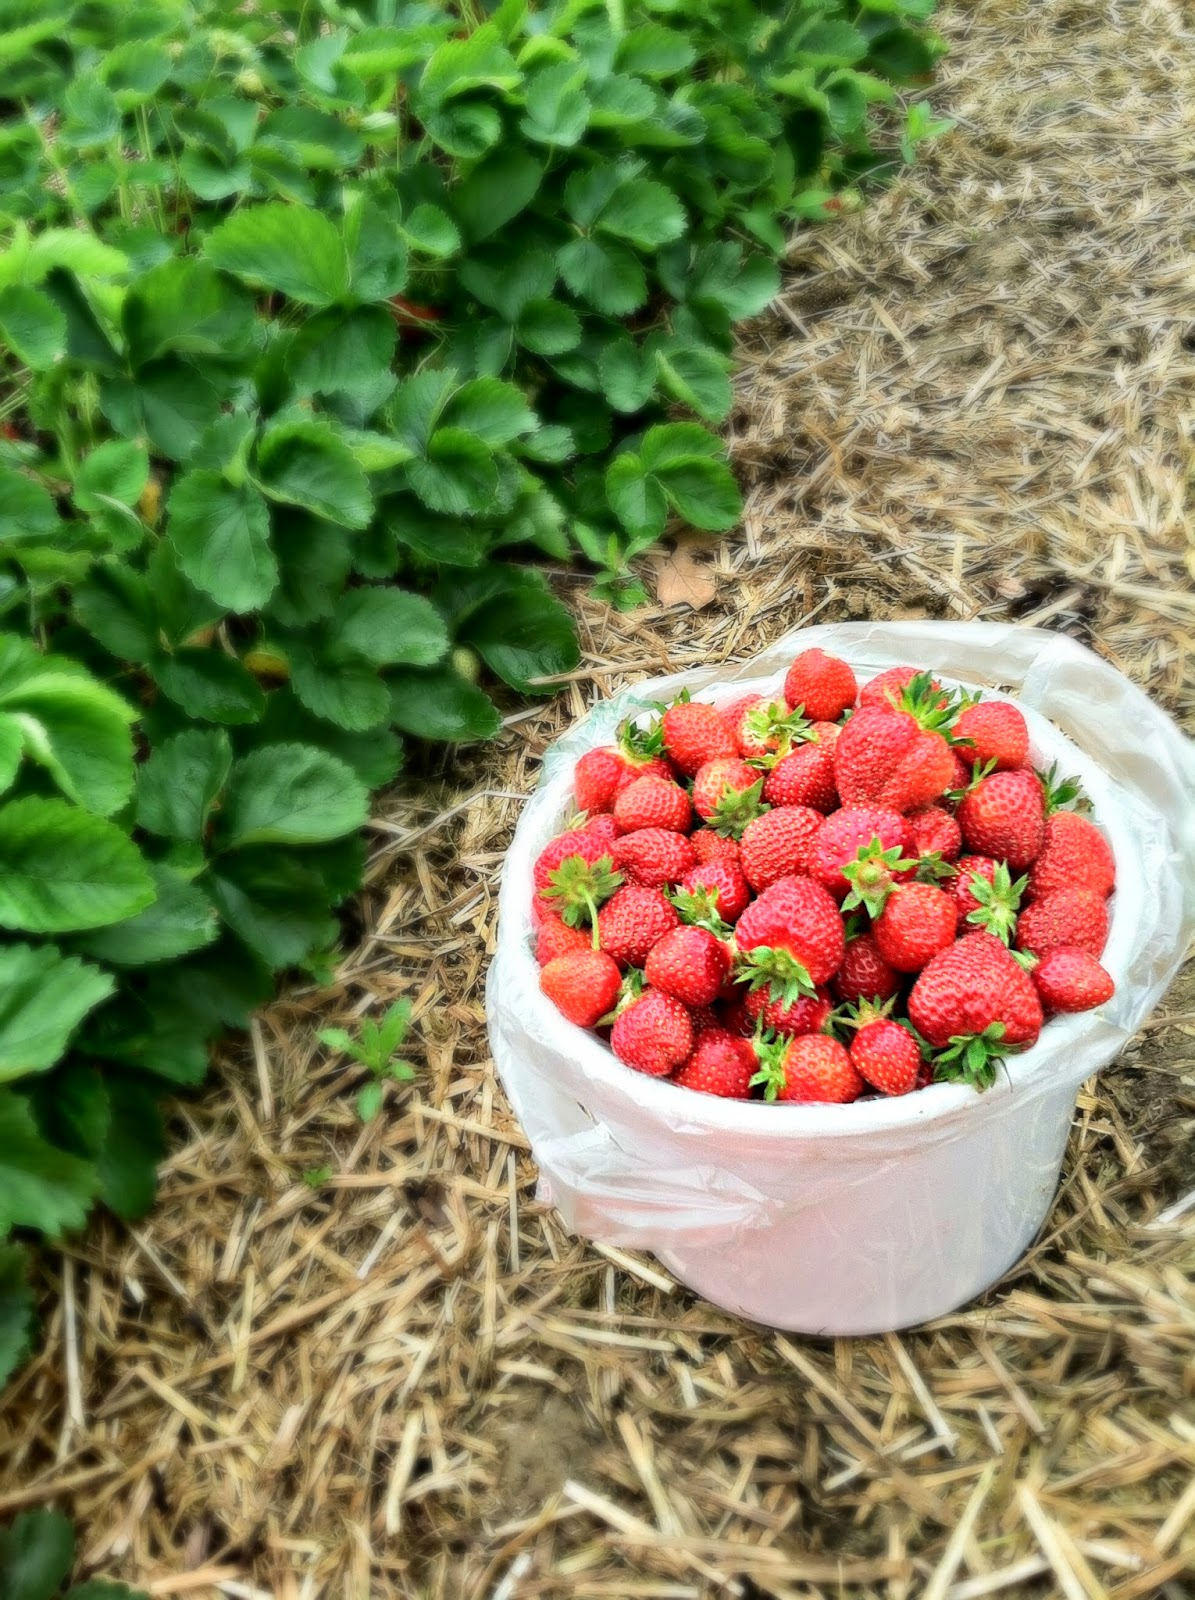 strawberry picking at waltz strawberry patch + announcing #strawberryweek!